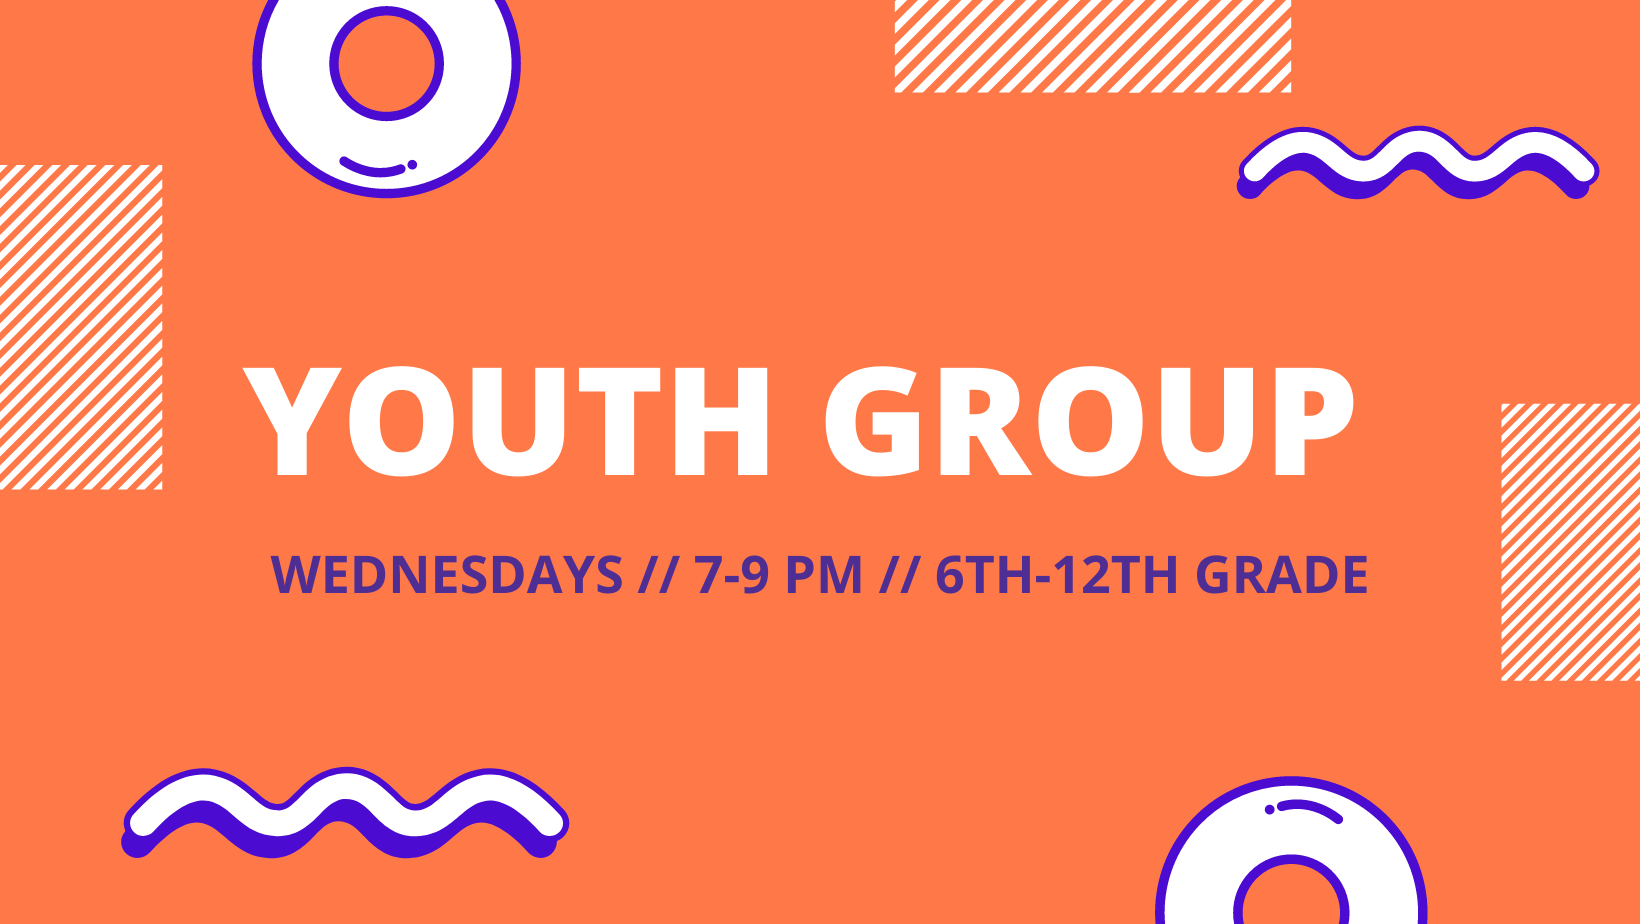 youth group graphic for newsletter image